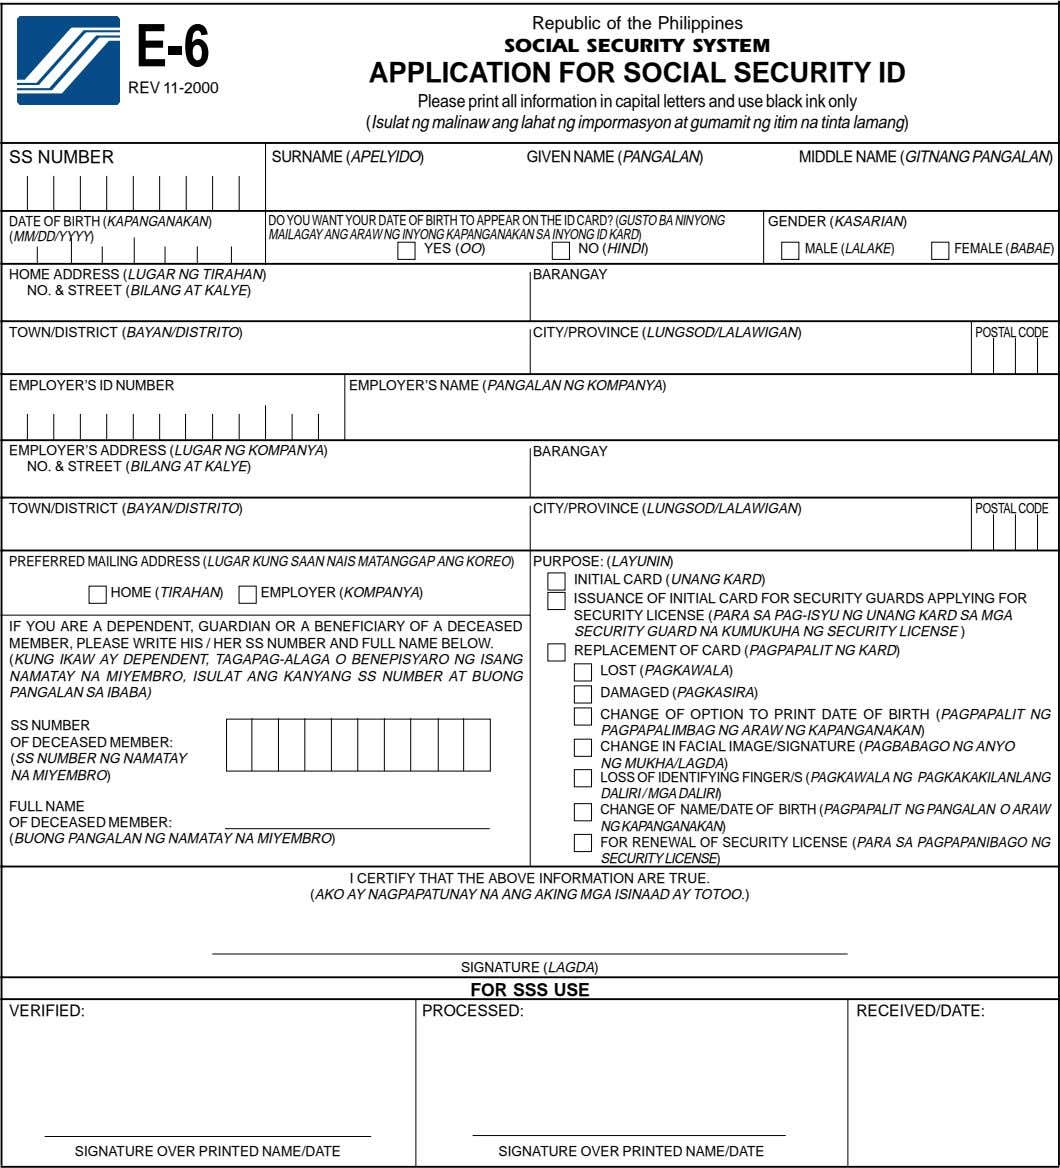 Republic of the Philippines APPLICATION FOR SOCIAL SECURITY ID REV 11-2000 Please print all information